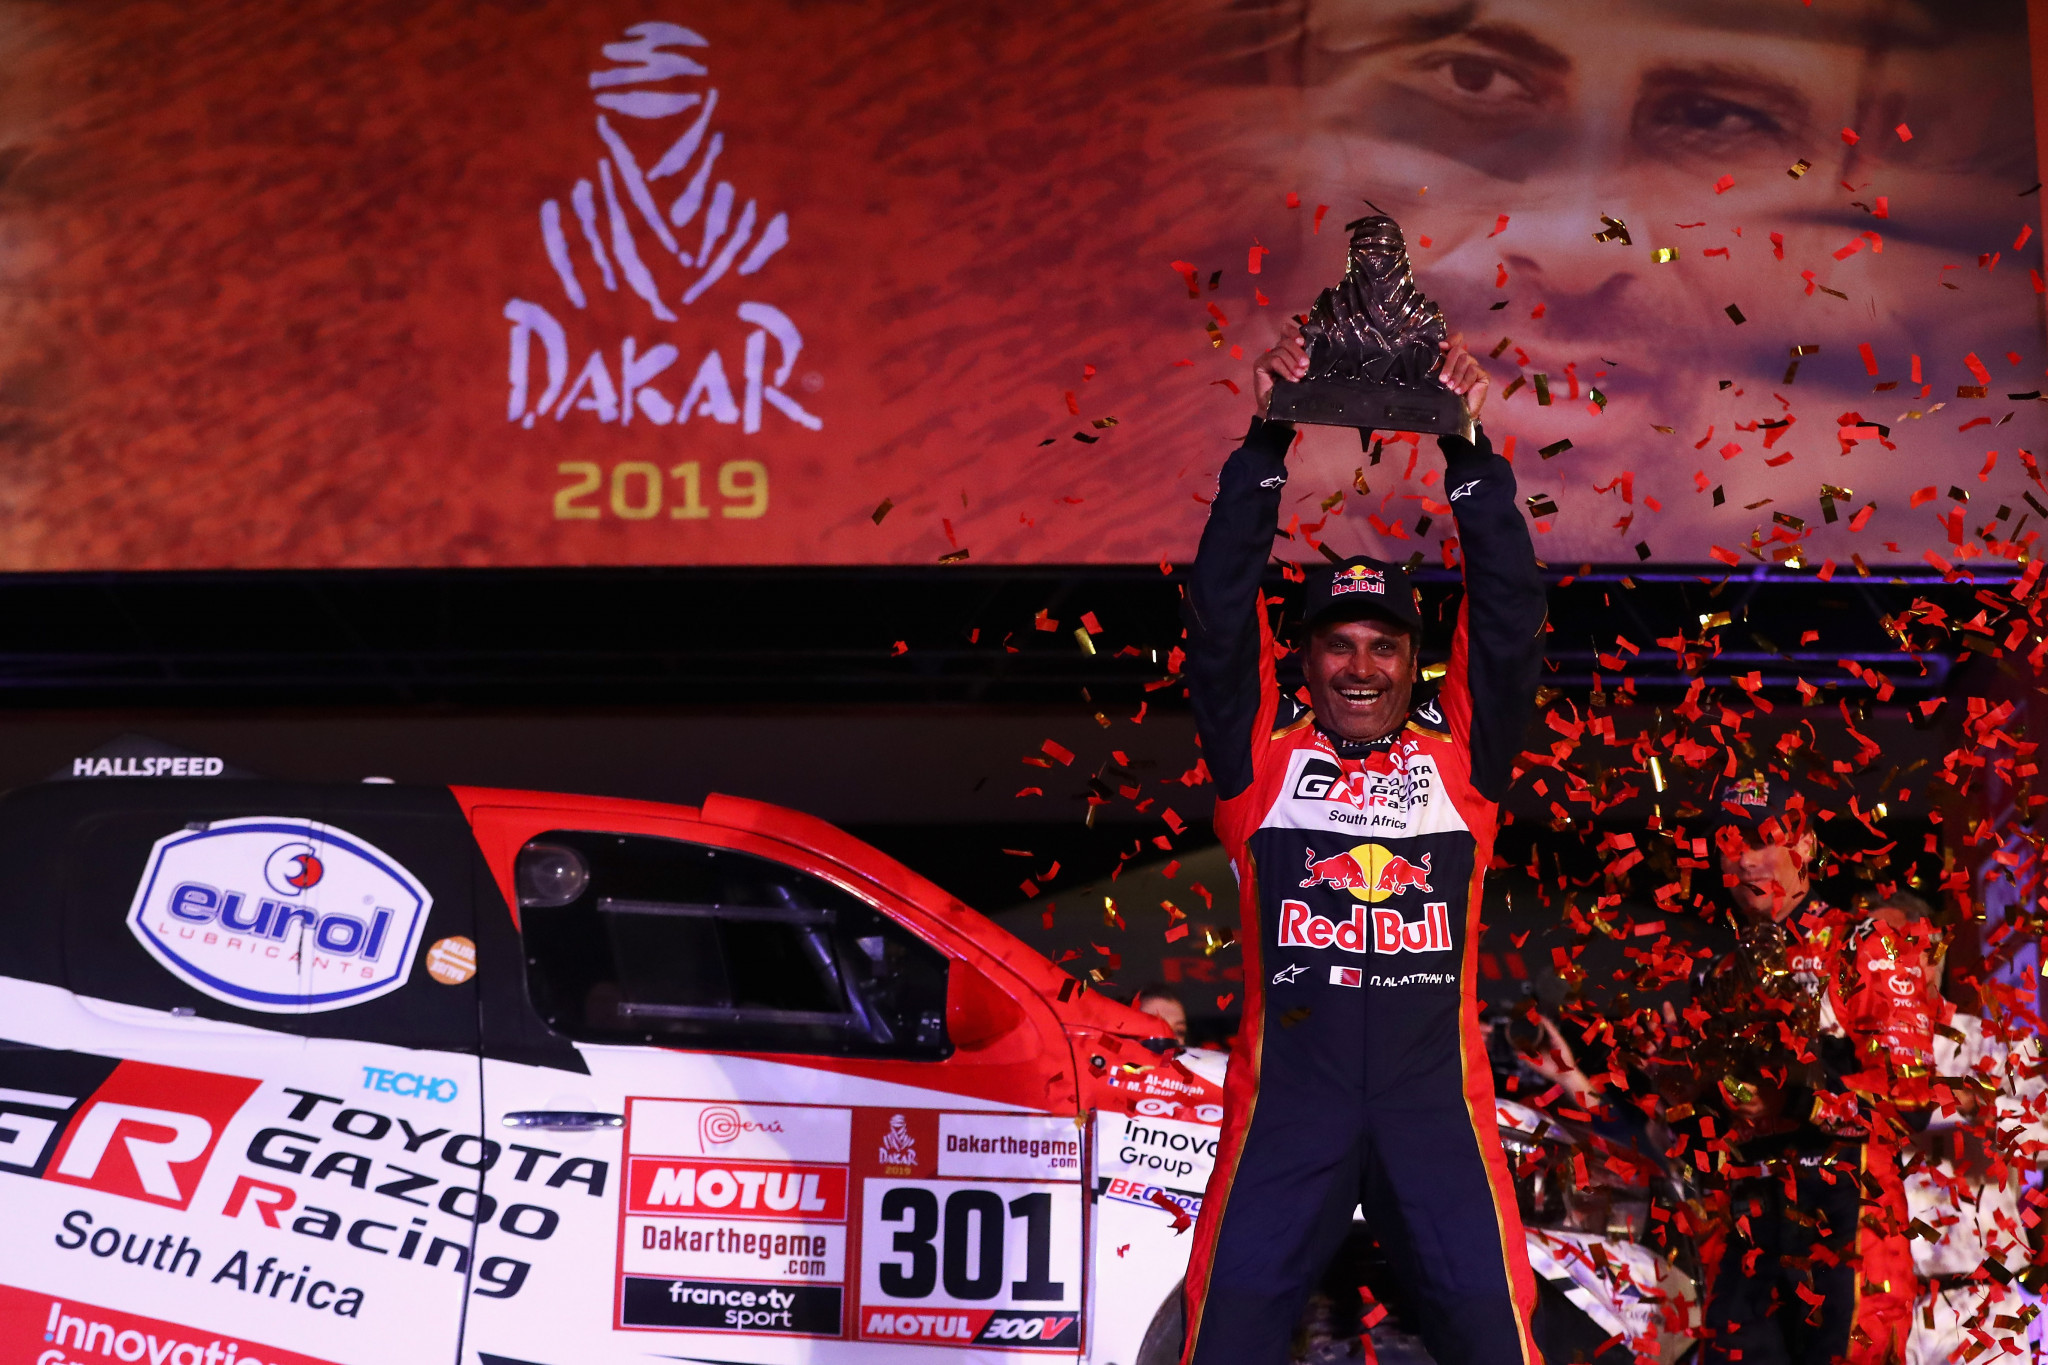 Dakar rally champion targeting seventh Olympic appearance at Tokyo 2020